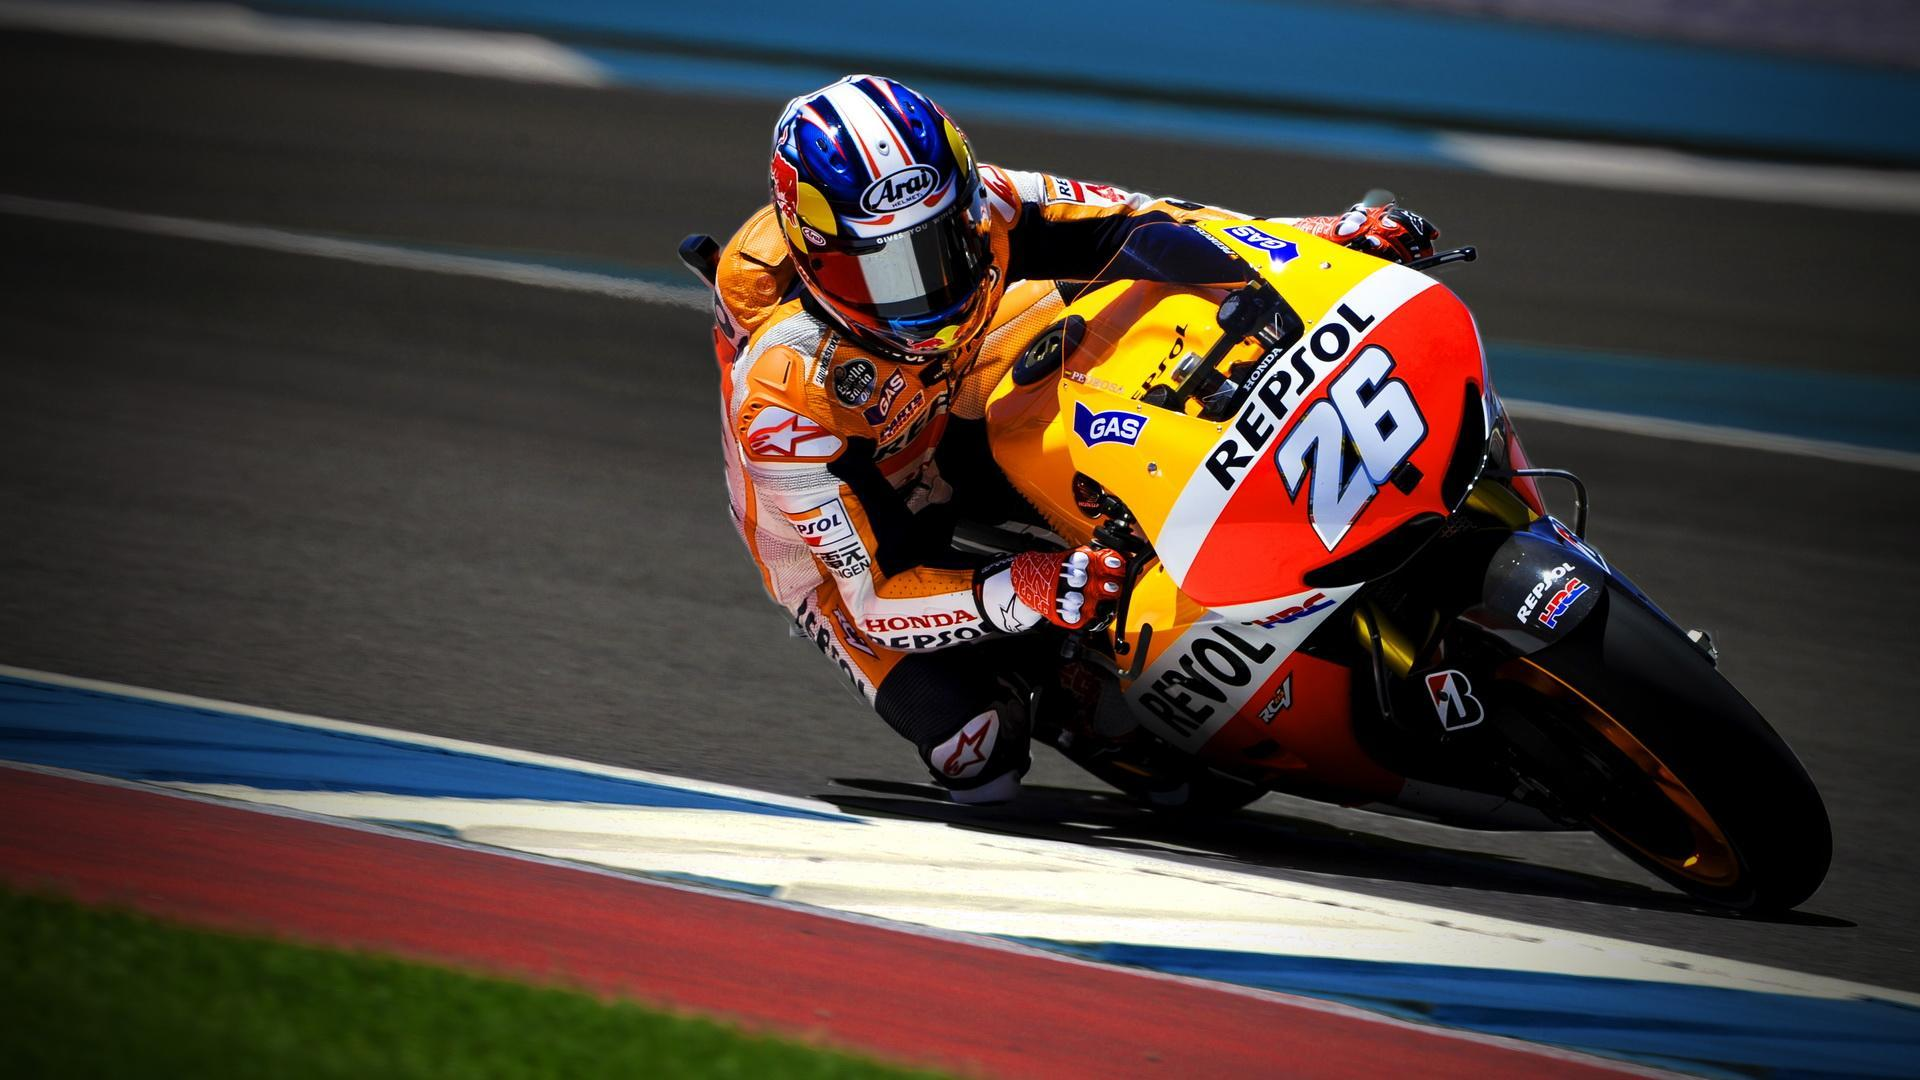 Moto Sport Gp Hd Wallpapers For Android Apk Download